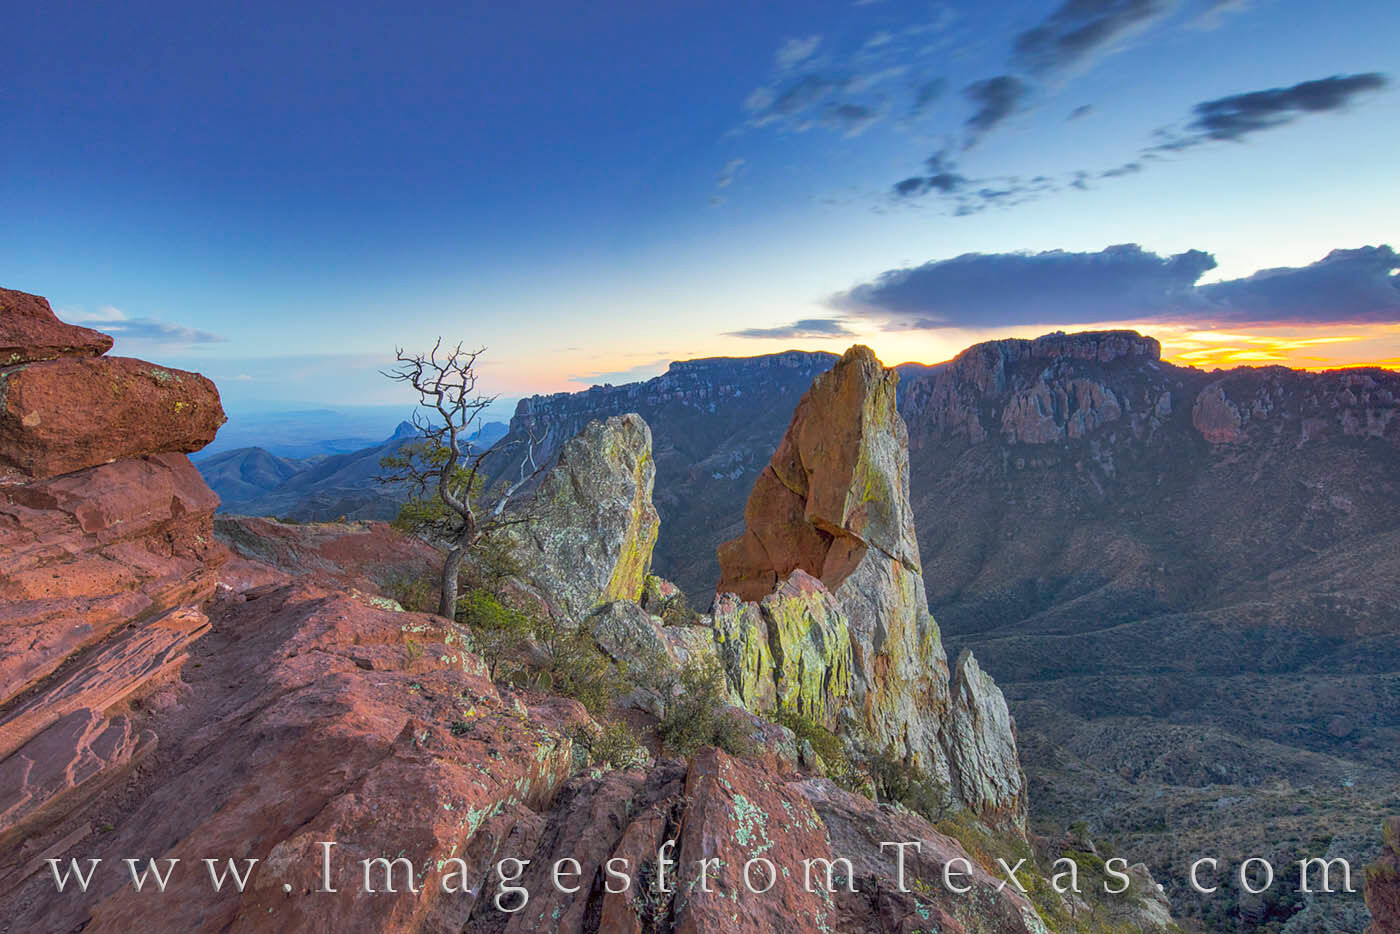 I had walked to the top of the Lost Mine Trail in Big Bend National Park to shoot sunset, but also to linger a few hours and...